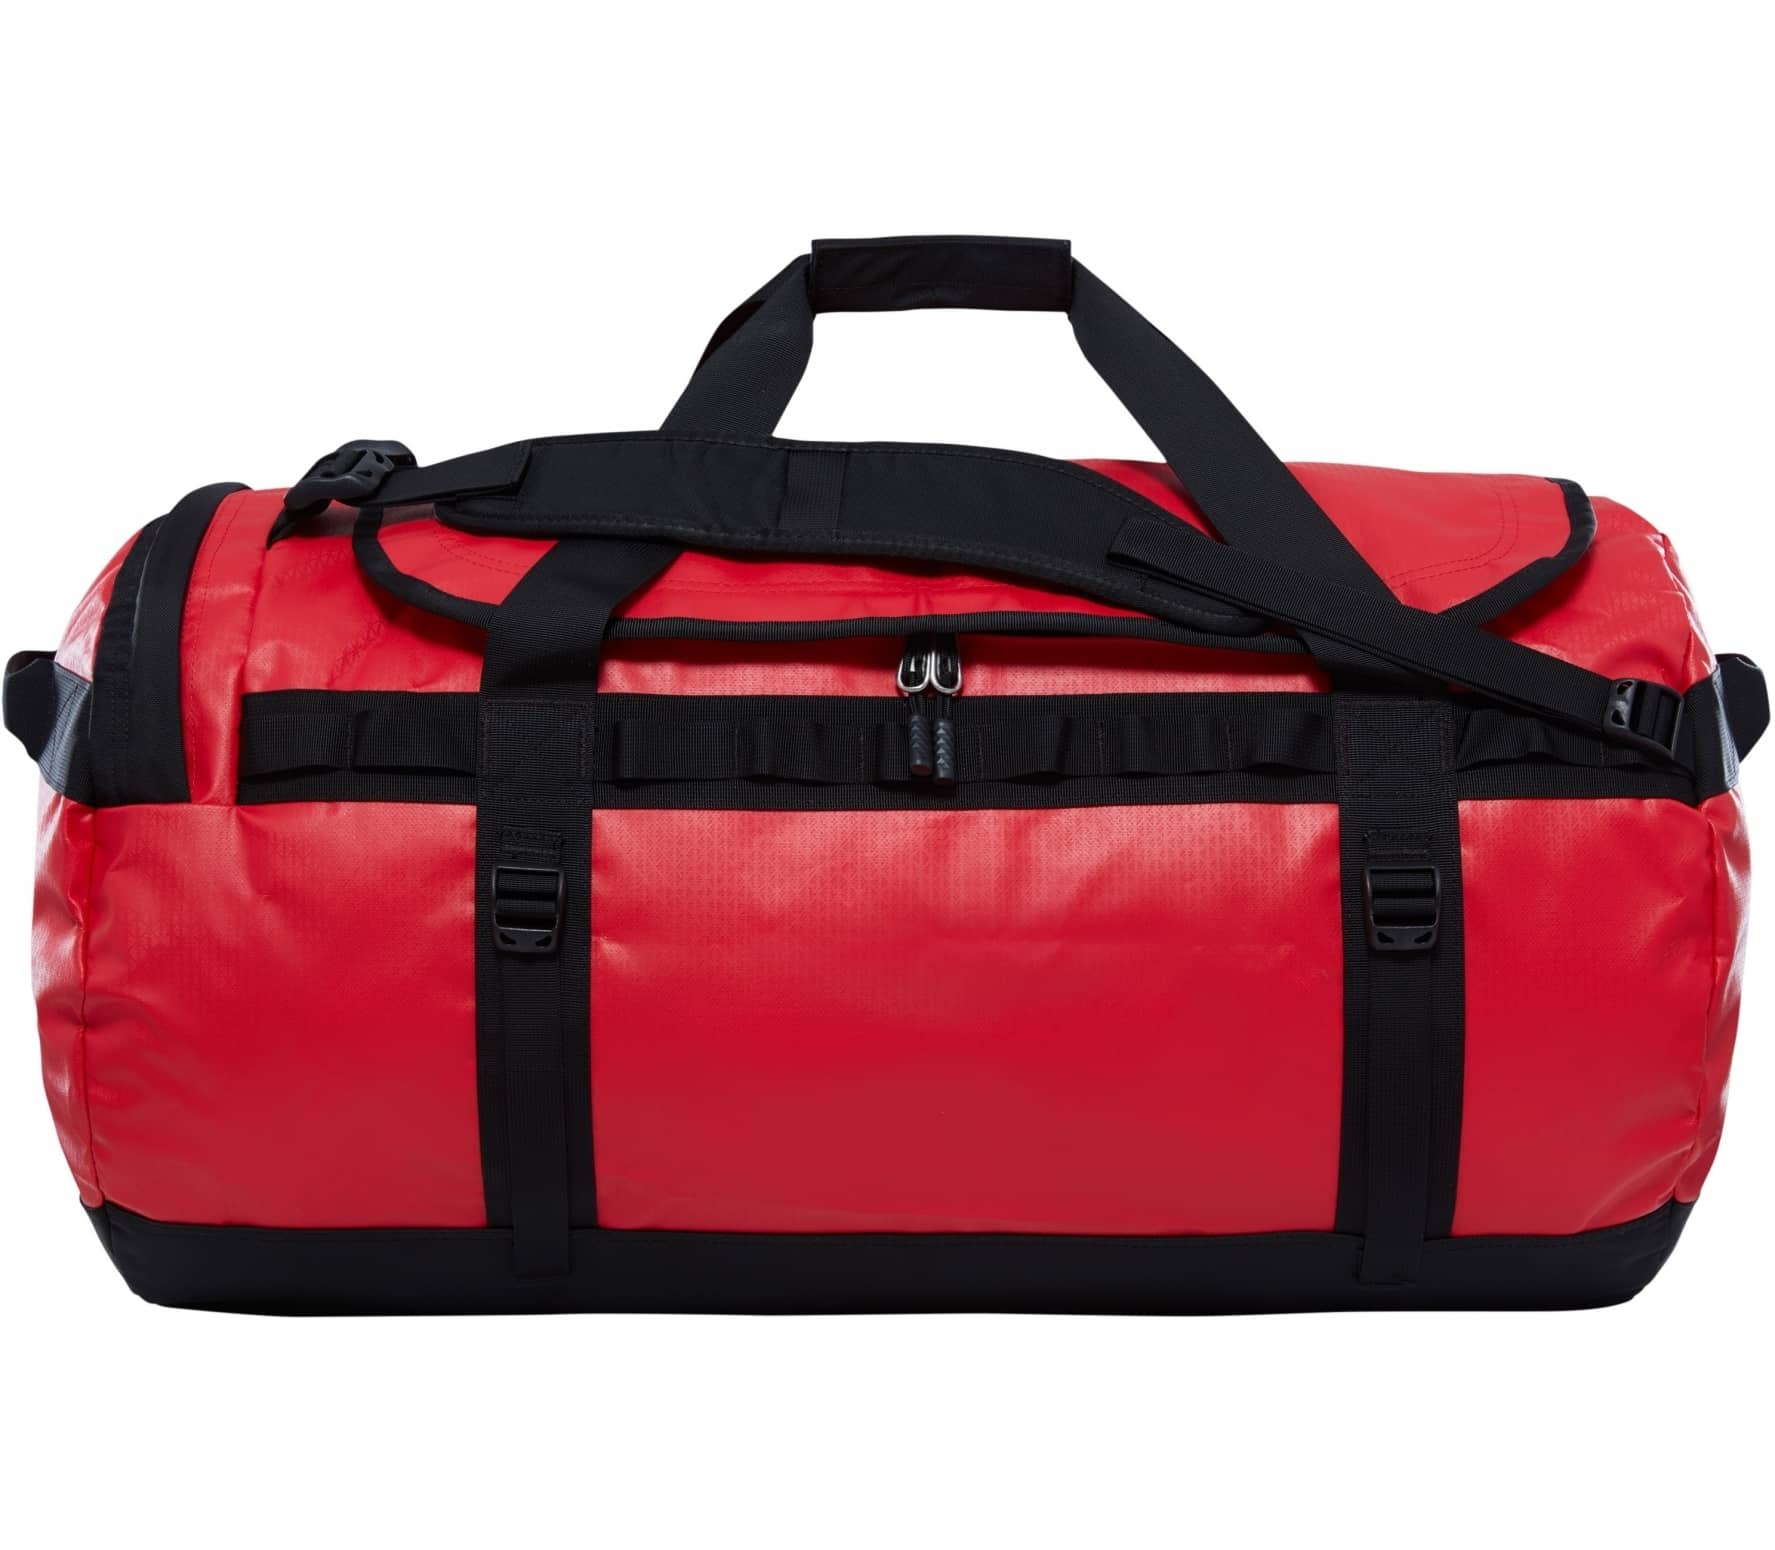 The North Face - Base Camp L - Update duffel bag (red/black) thumbnail